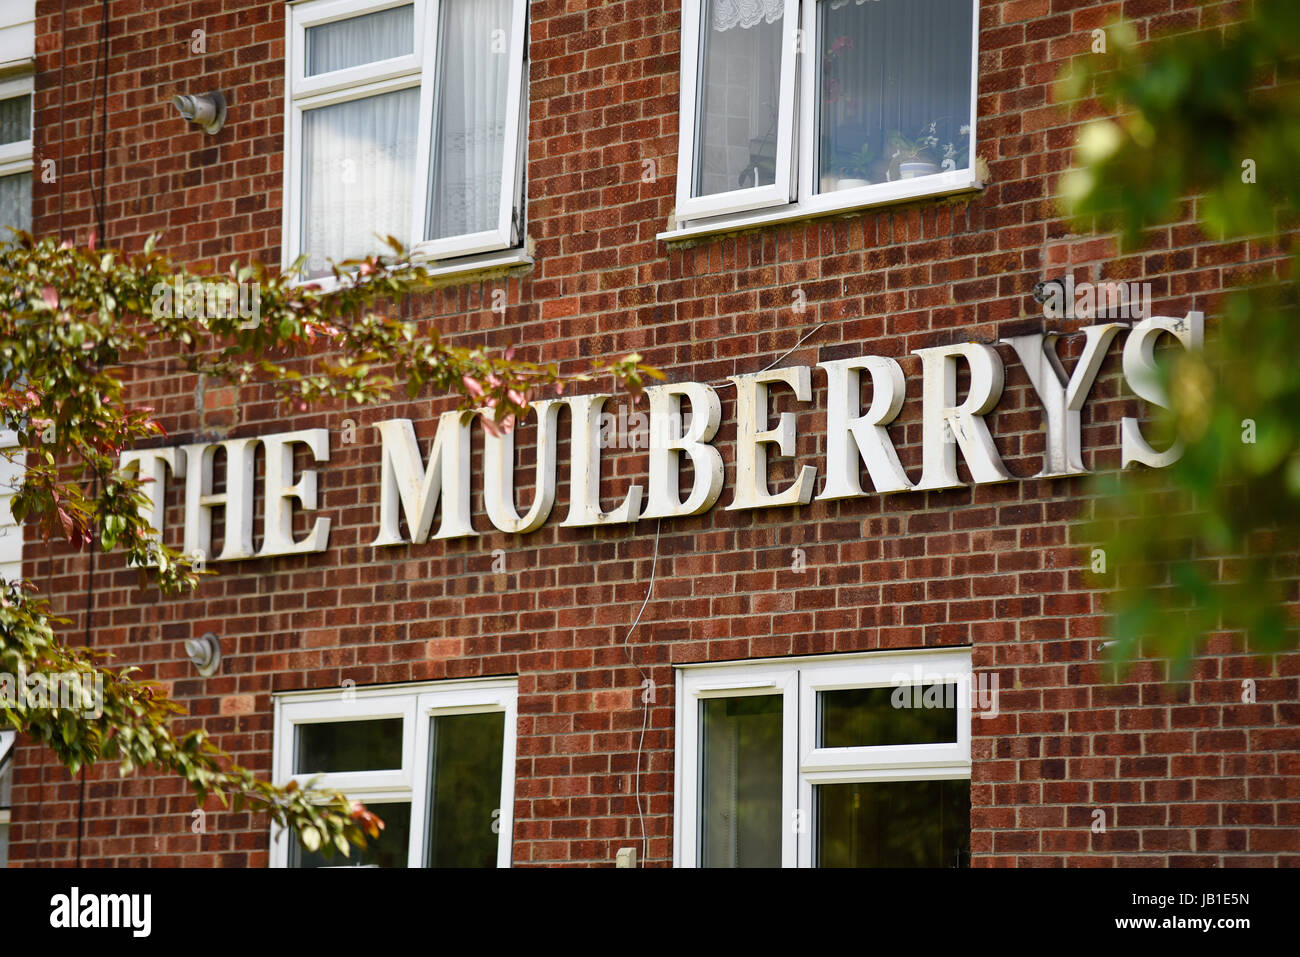 The Mulberrys flats in Sutton Road, Southend on Sea, Essex. Name with space for copy Stock Photo